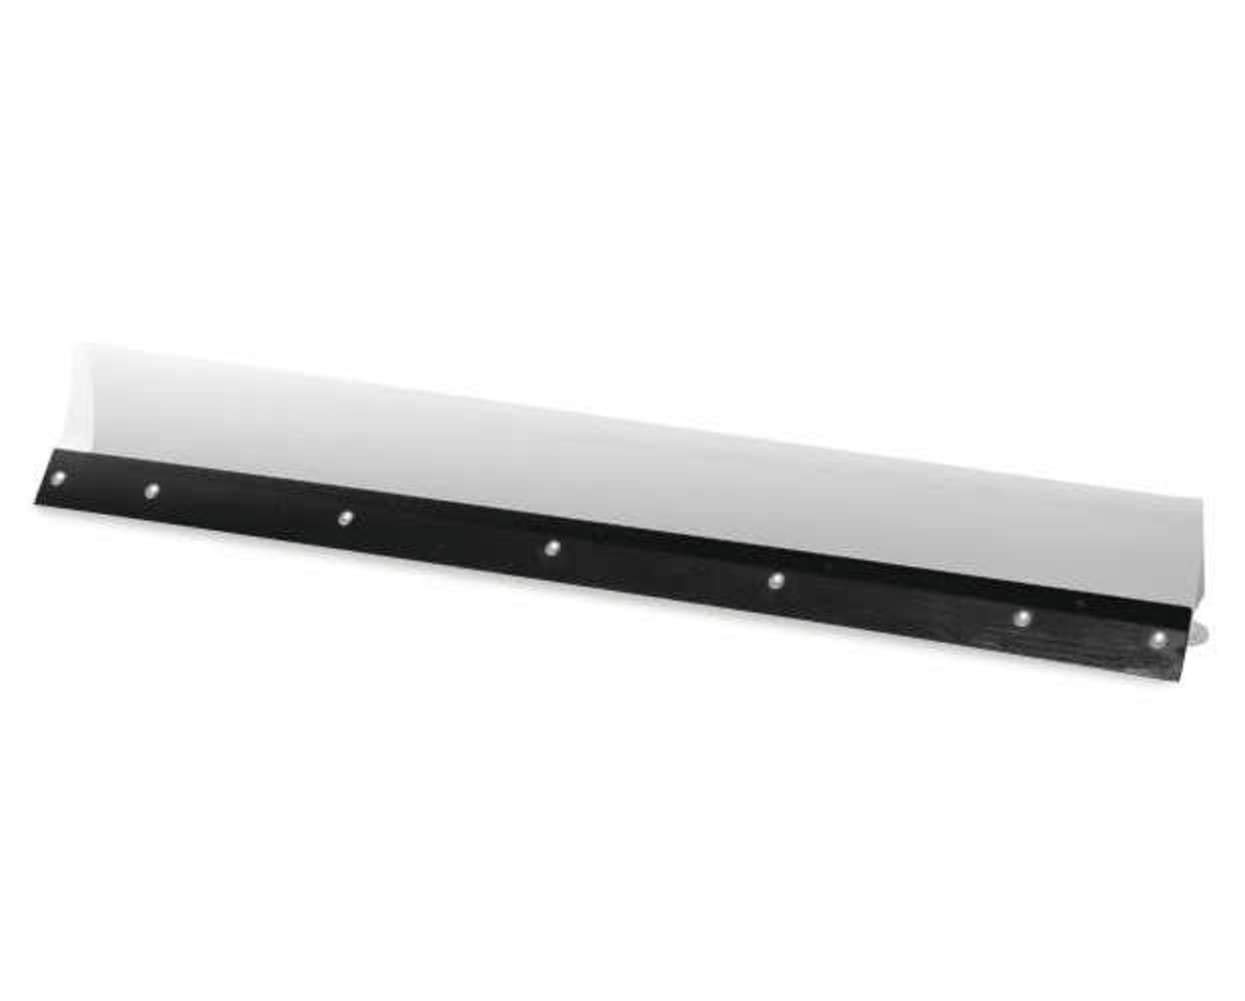 KFI Products 566084 Replacement Wear Bar for Cycle Country Plow Blades - 60in.